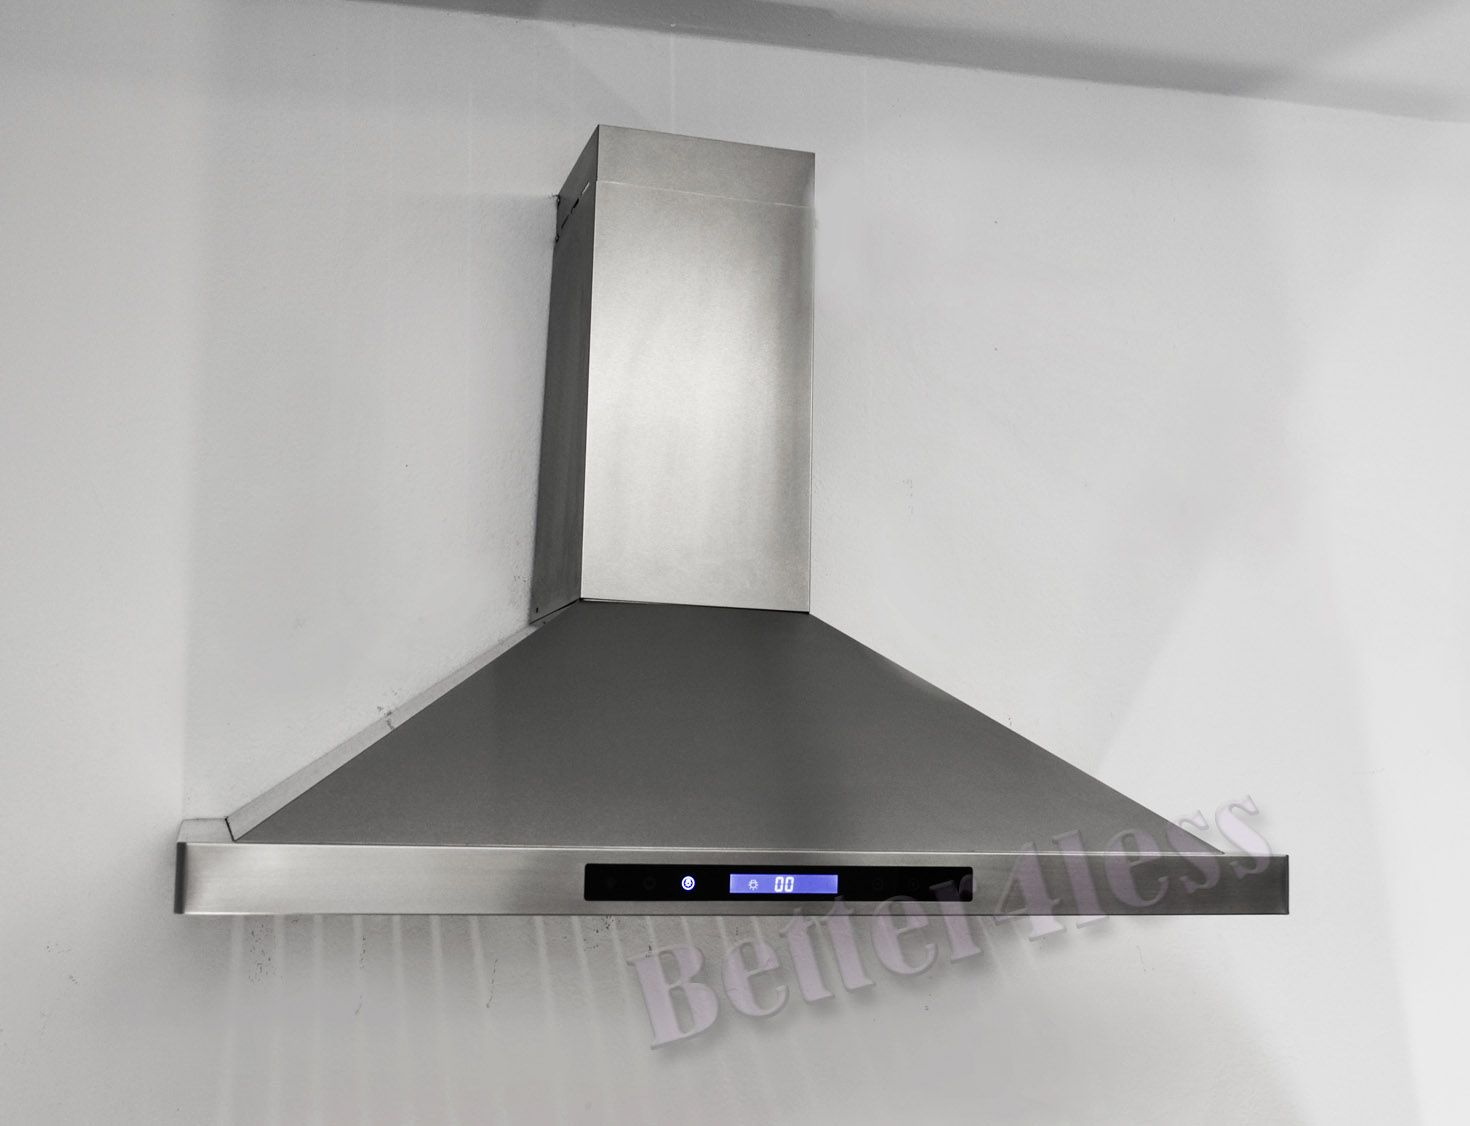 Details about 36 Wall Mount Stainless Steel Kitchen Range